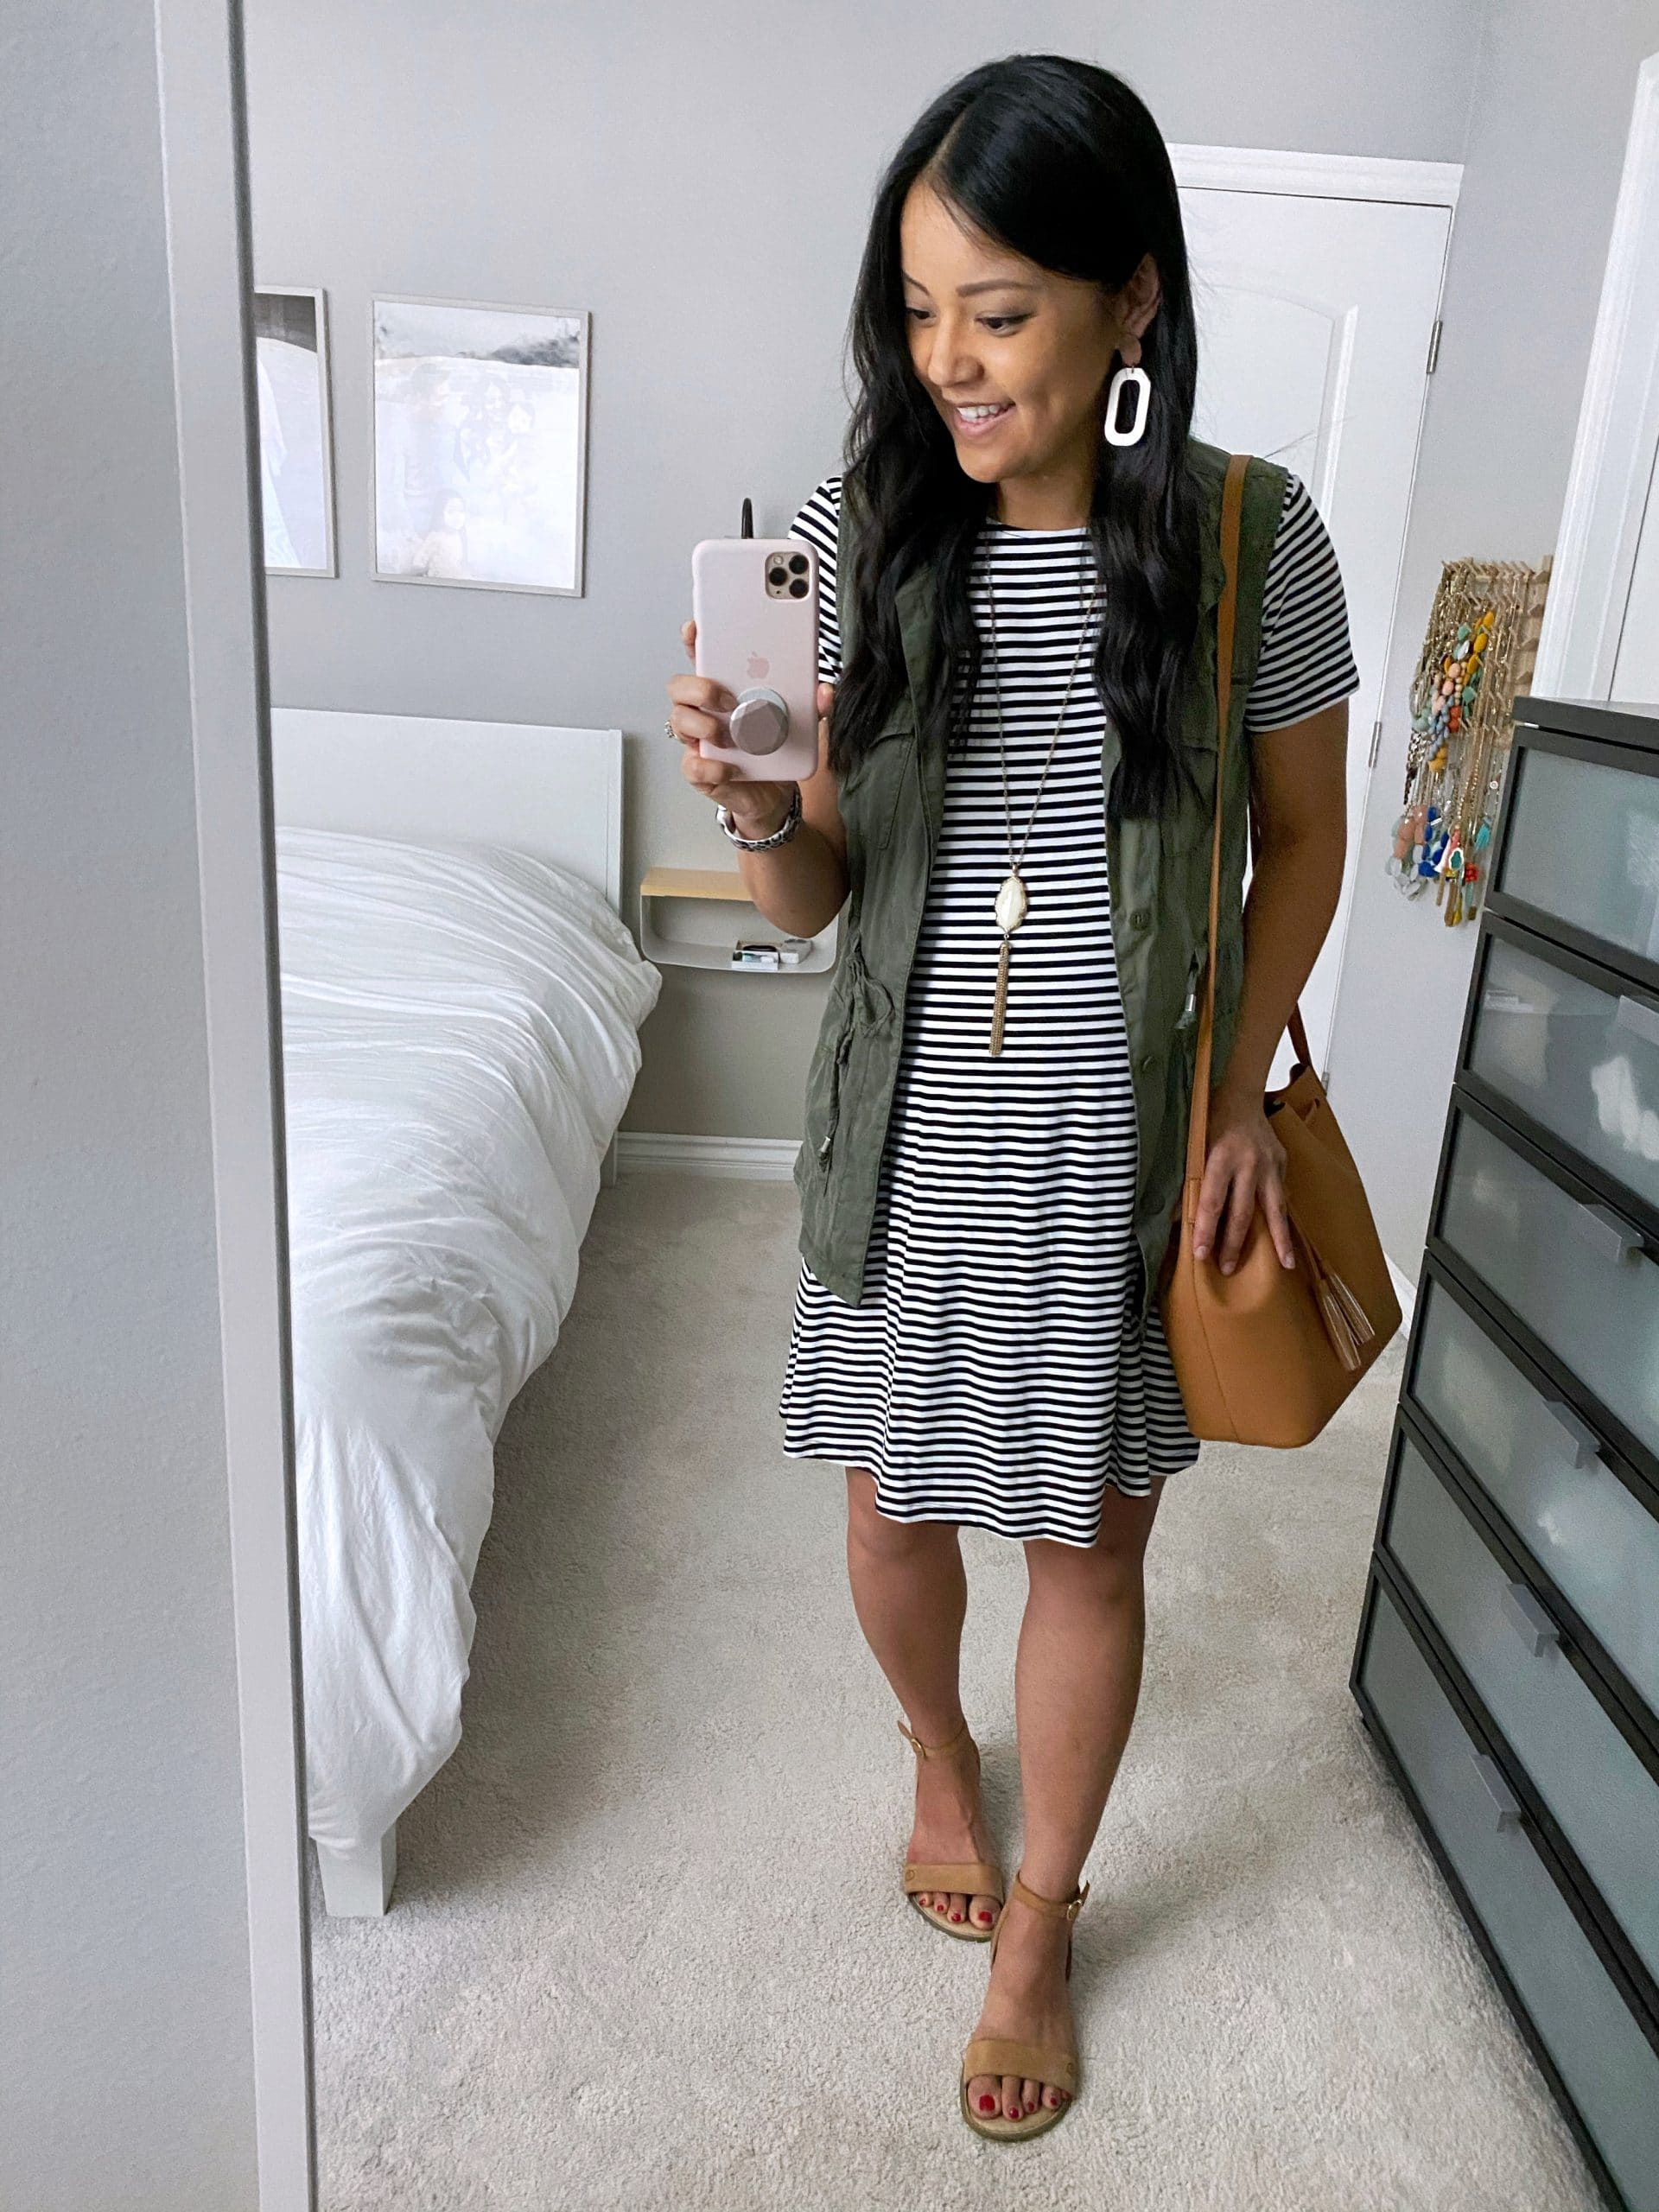 Striped Dress Outfit: black and white striped swing dress + utility vest + tan born sandals + tan drawstring crossbody bag + long gold and white tassel pendant necklace + white cutout leather earrings